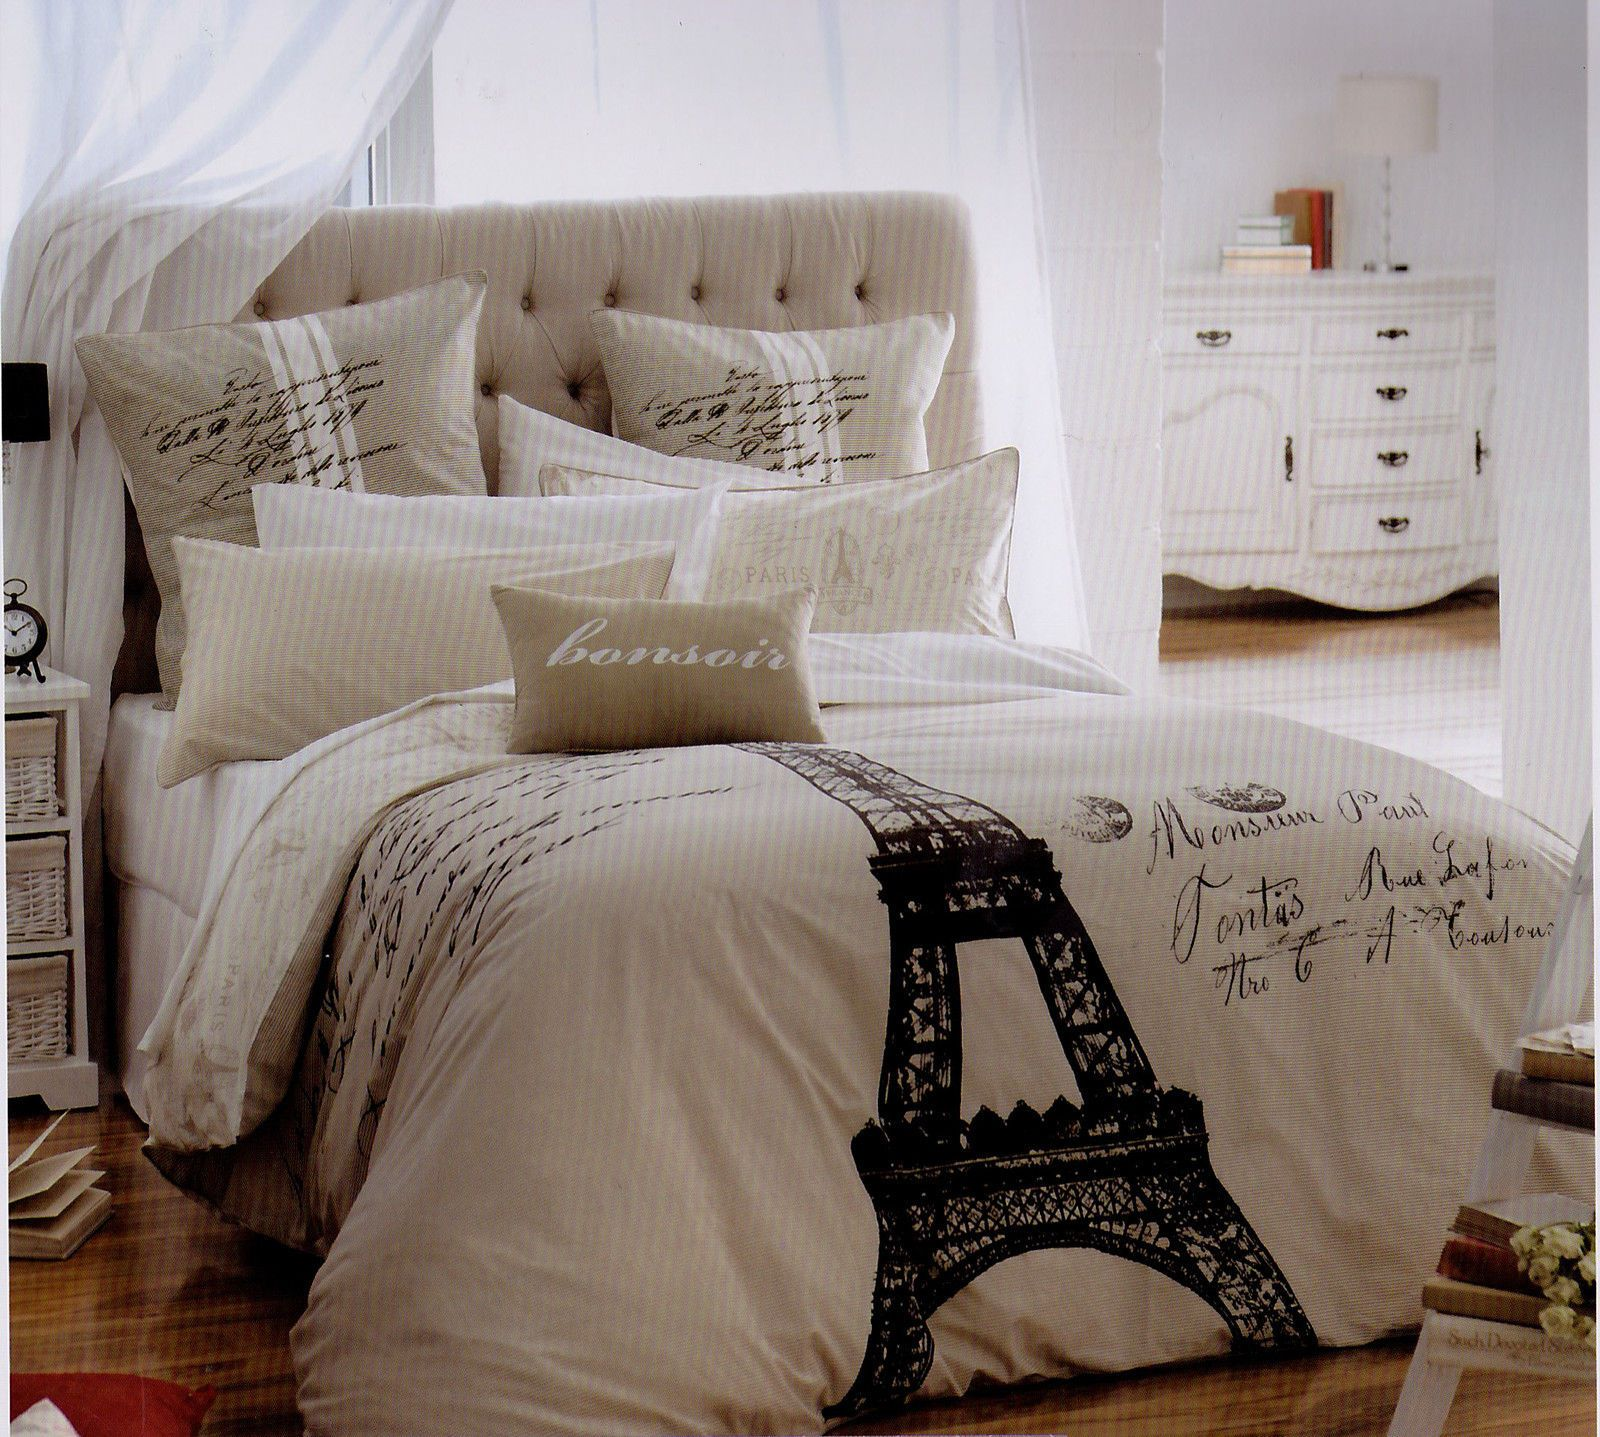 Lovely Anthology Bedding Photos Of Bed Style